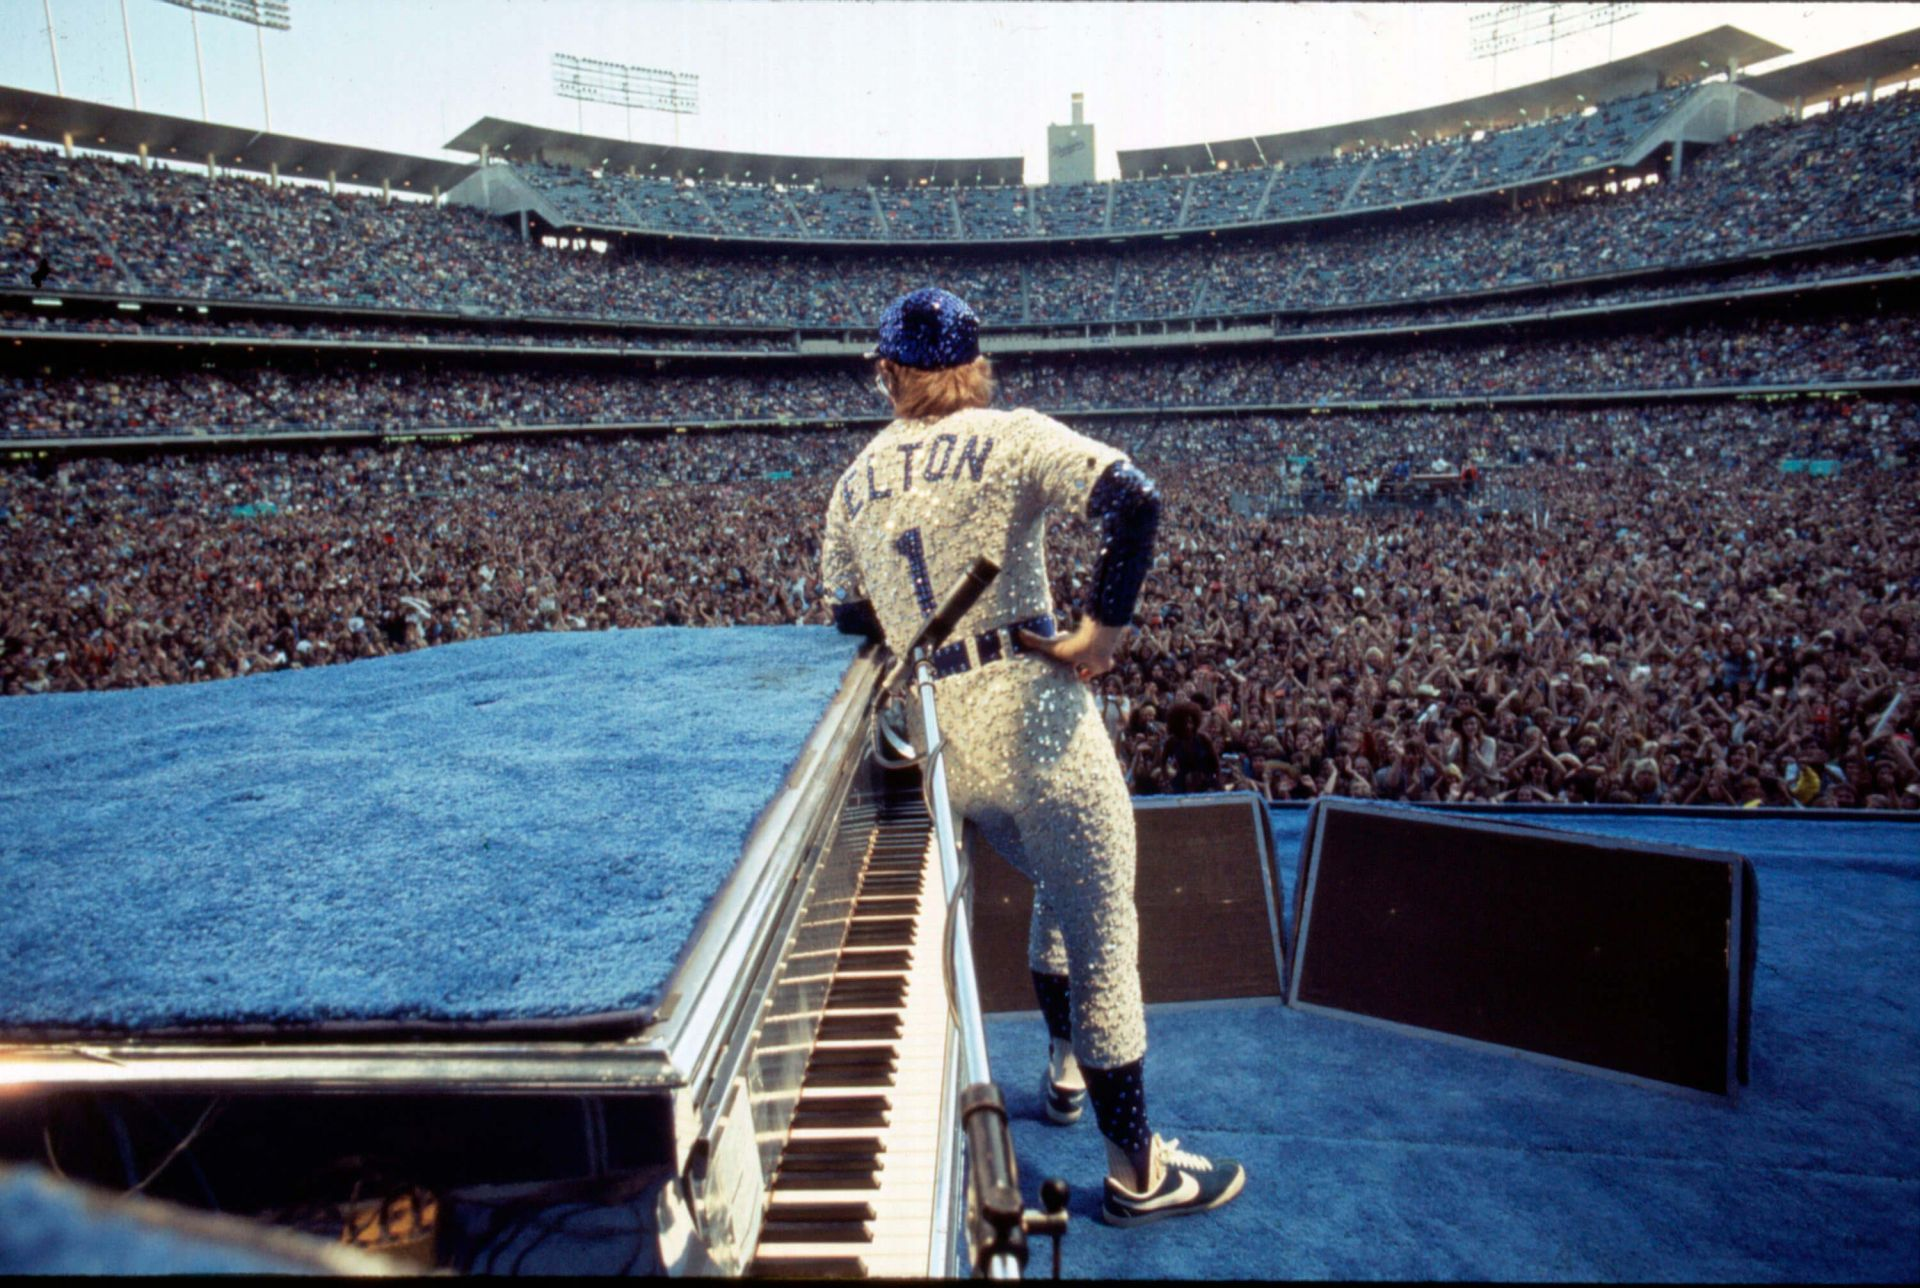 October 1975 - Elton John posing for the crowd at Dodger Stadium, Los Angeles. (Terry O'Neill @ Iconic Images)